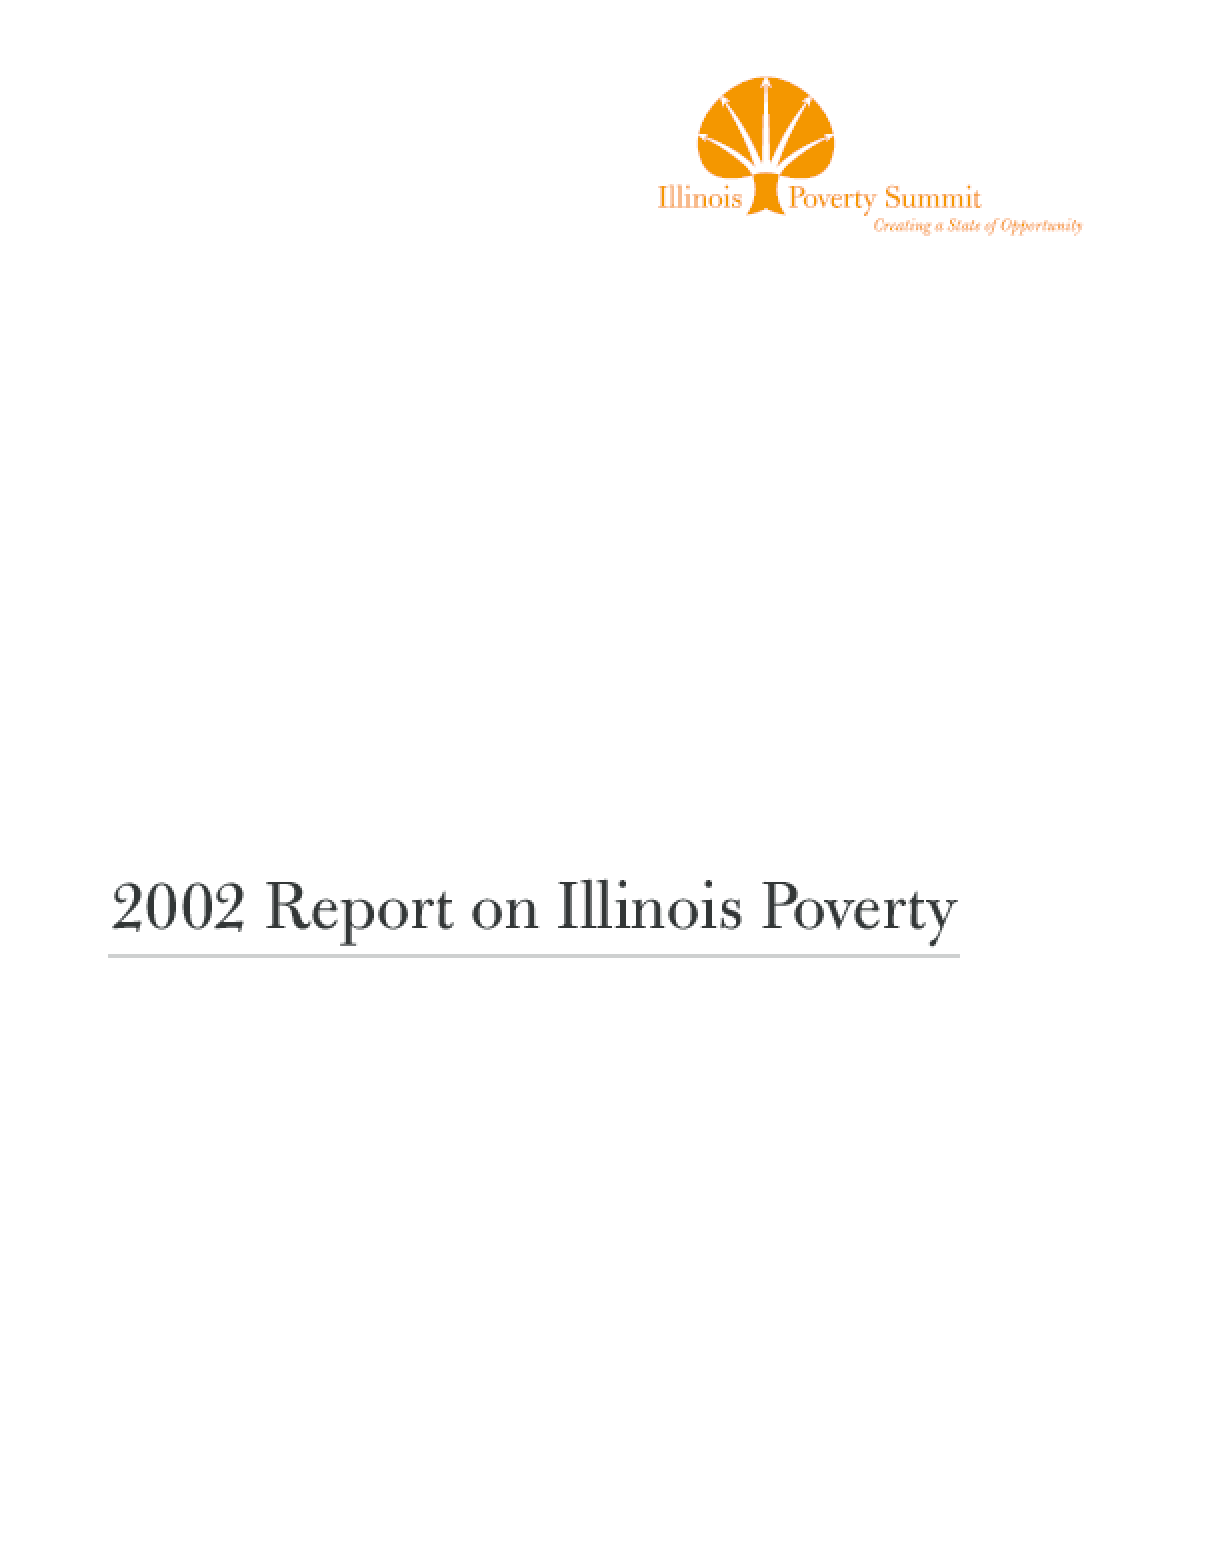 2002 Report on Illinois Poverty